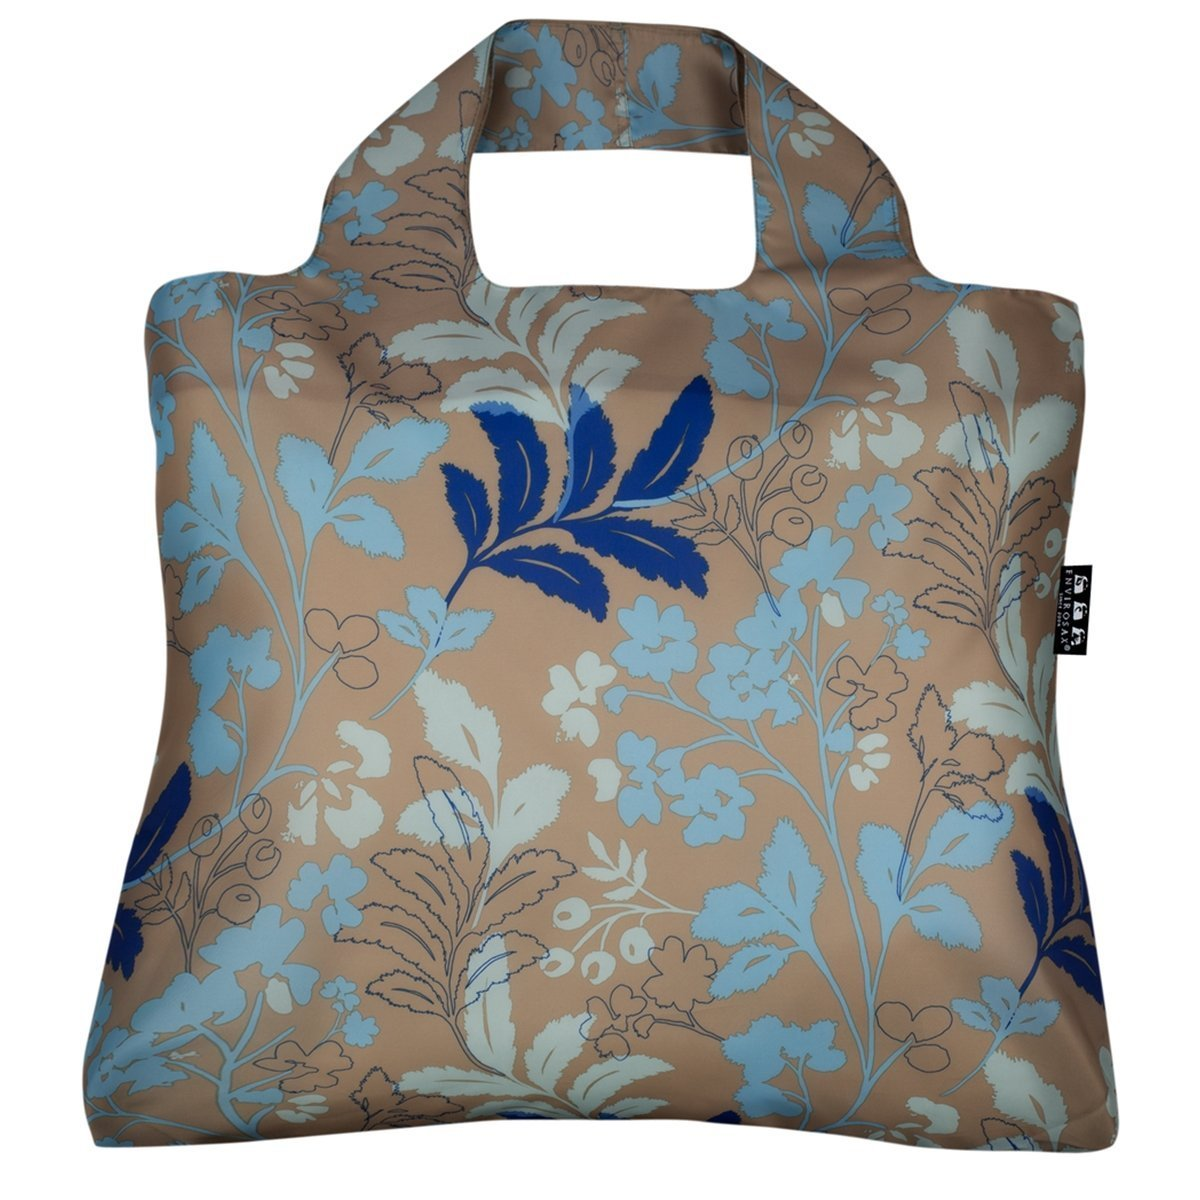 Envirosax Mallorca Reusable Shopping Bag 5, ML.B5